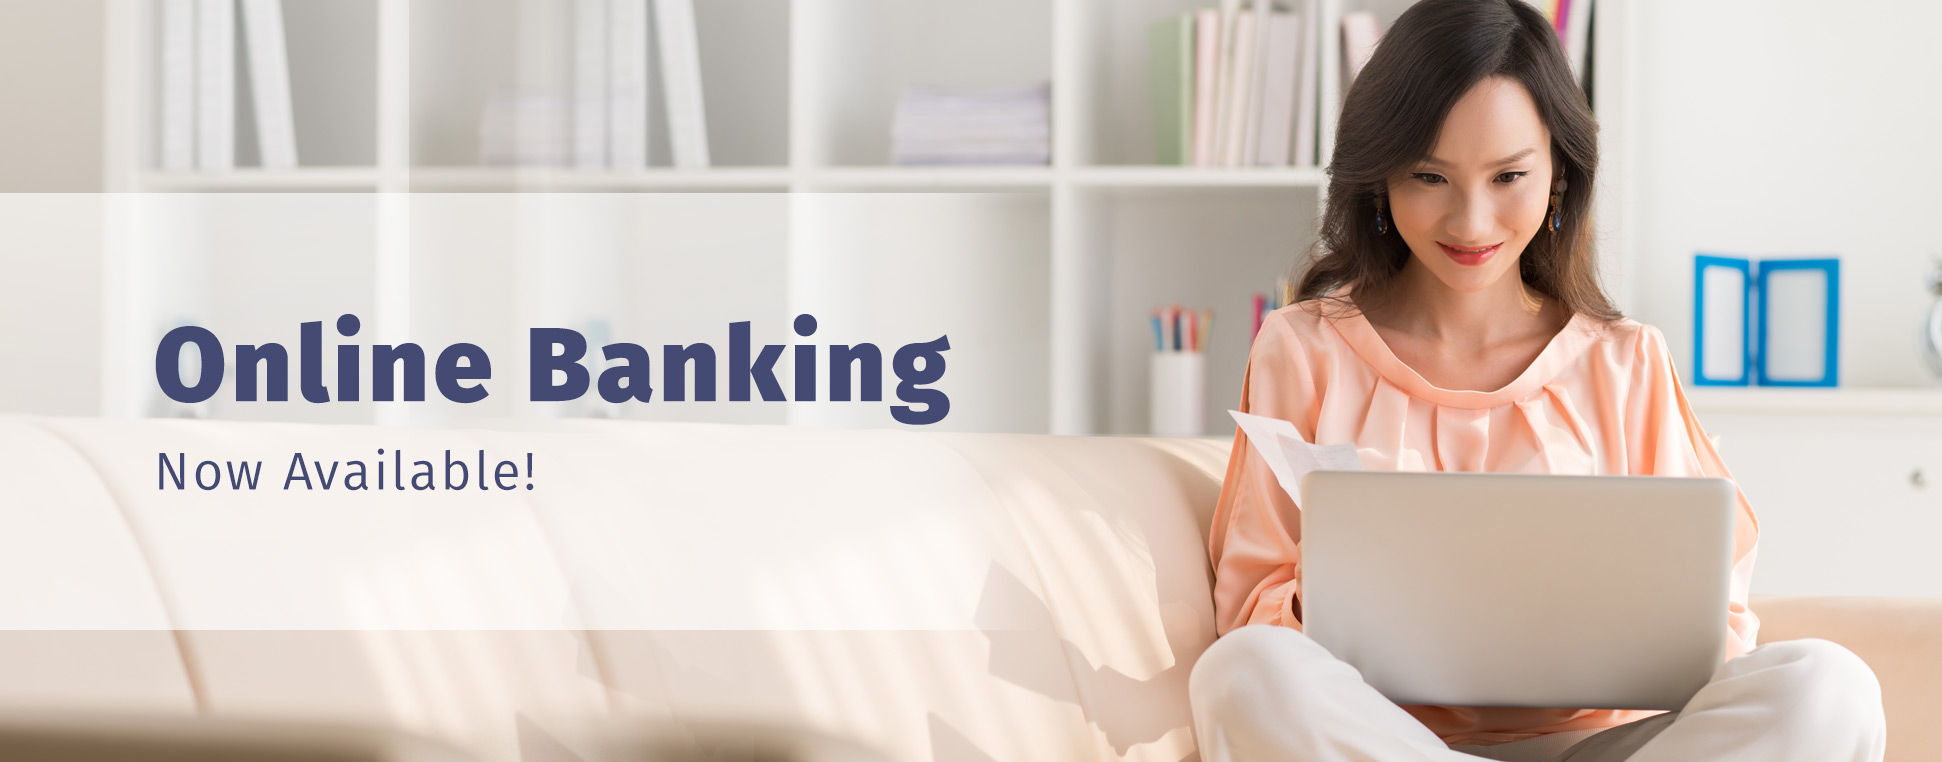 Online Banking. Now available!